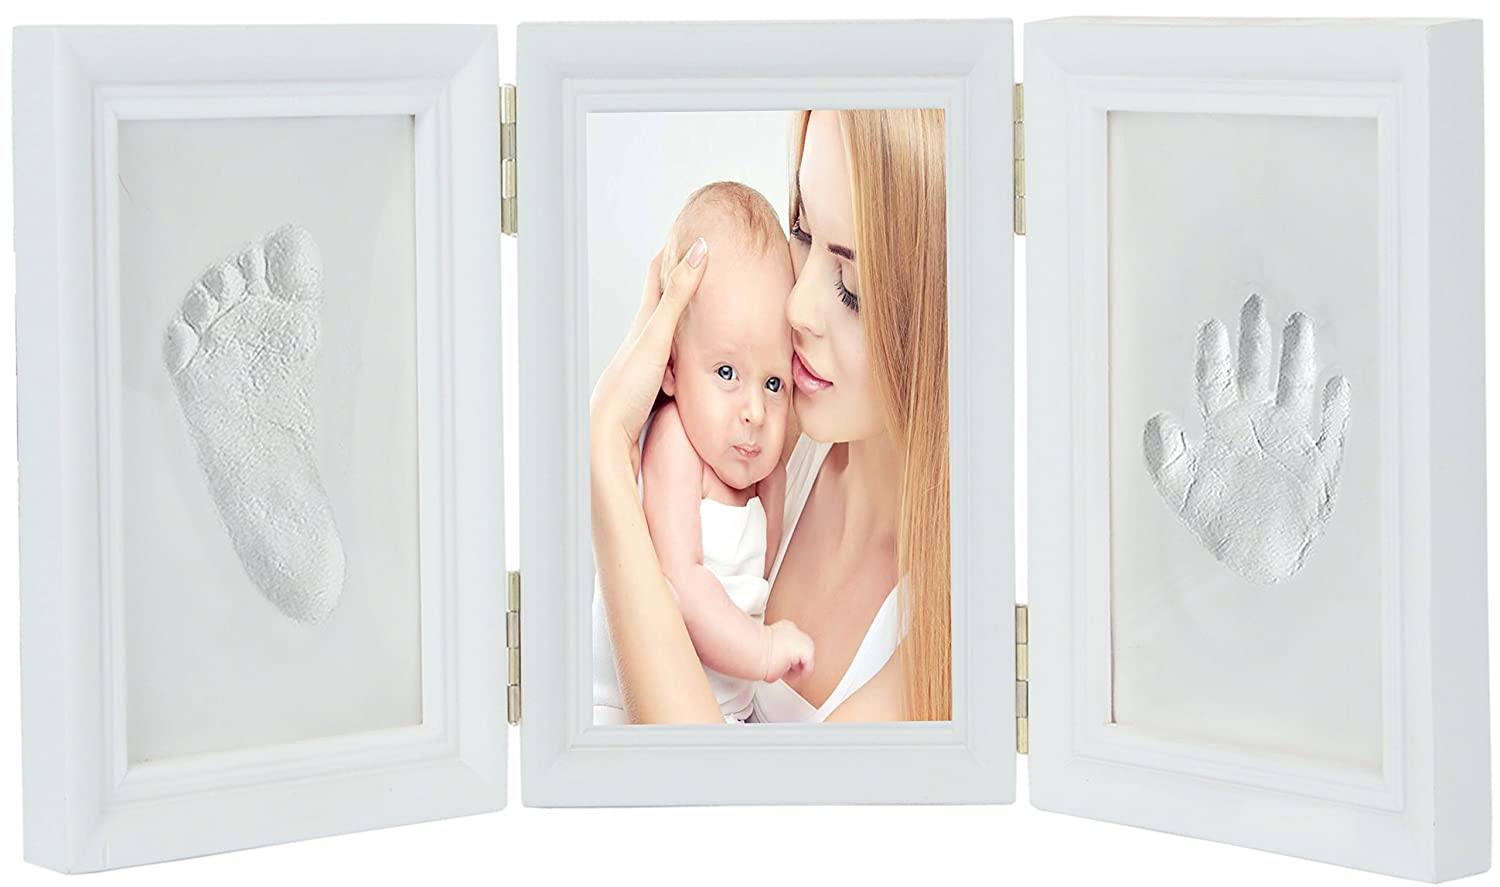 Deceny CB Baby Handprint Kit & Footprint Photo Frame for Newborn Girls and Boys, Unique Baby Shower Gifts Set for Registry, Memorable Keepsake Box Decorations for Room Wall or Nursery Decor